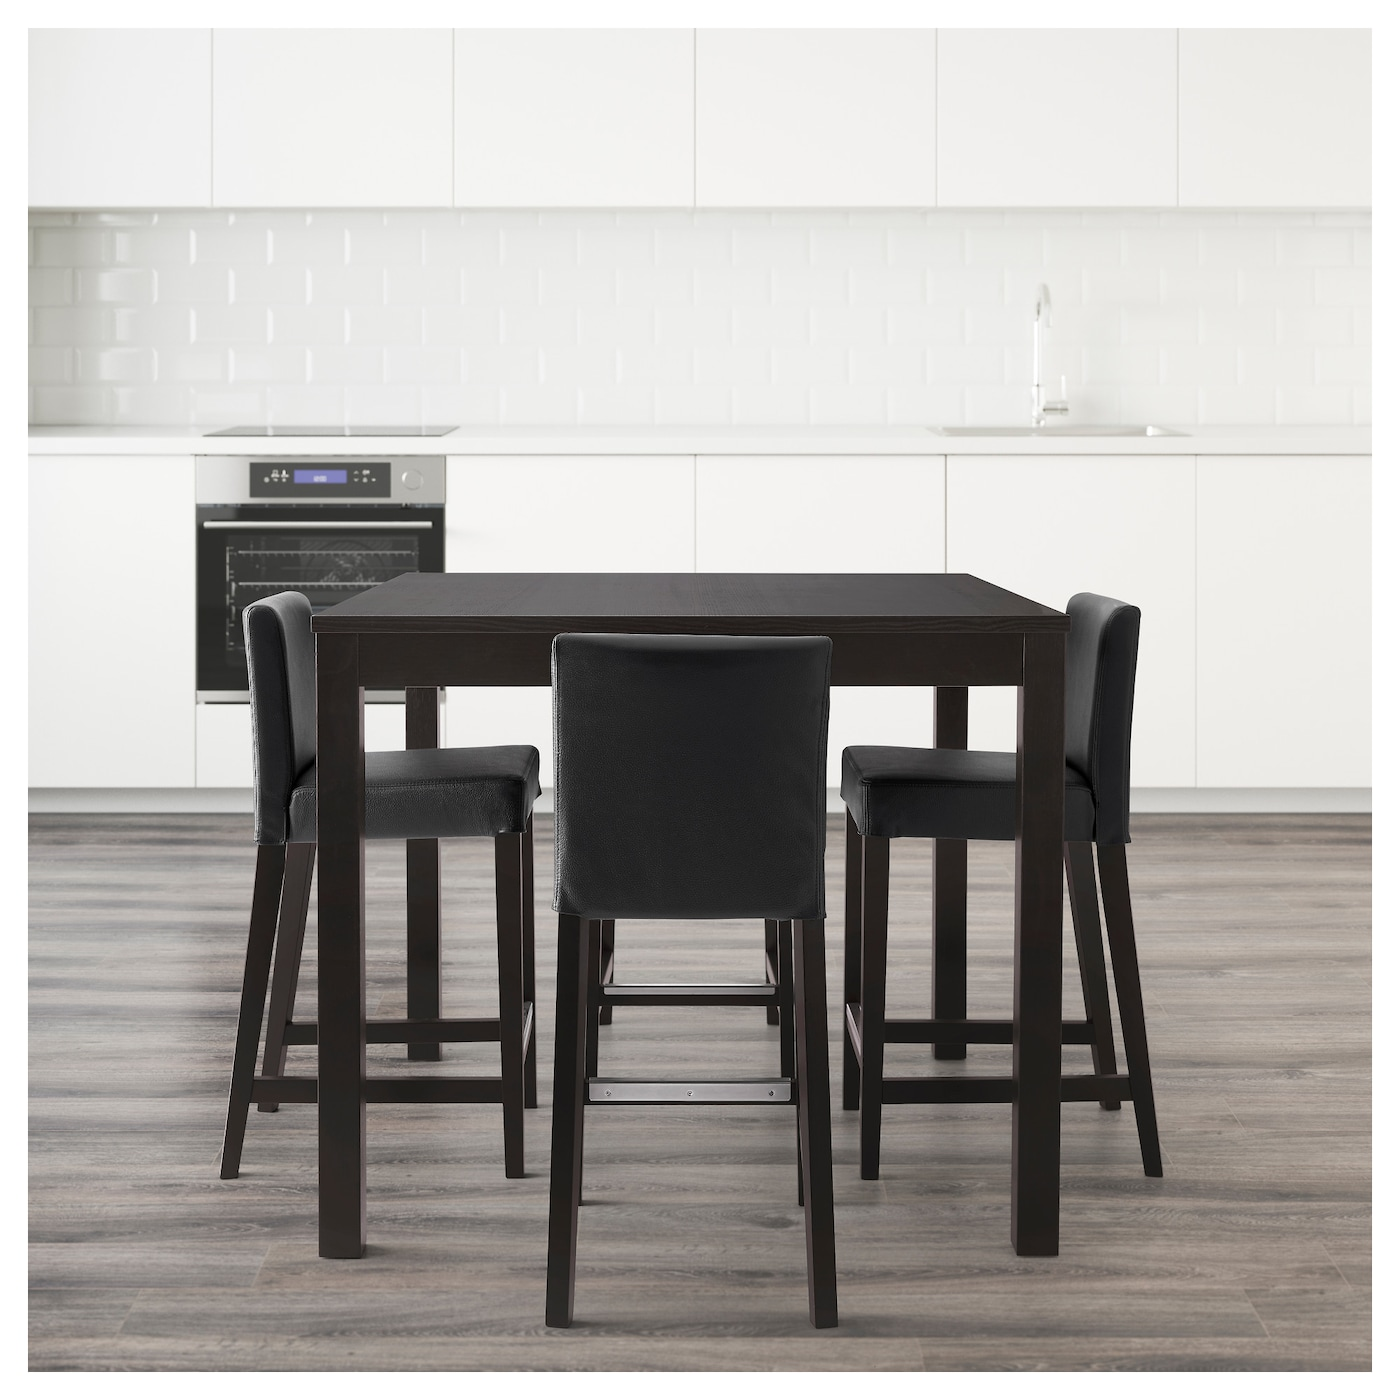 Henriksdal bjursta table de bar 4 tabourets brun noir for Table extensible ikea bjursta brun noir